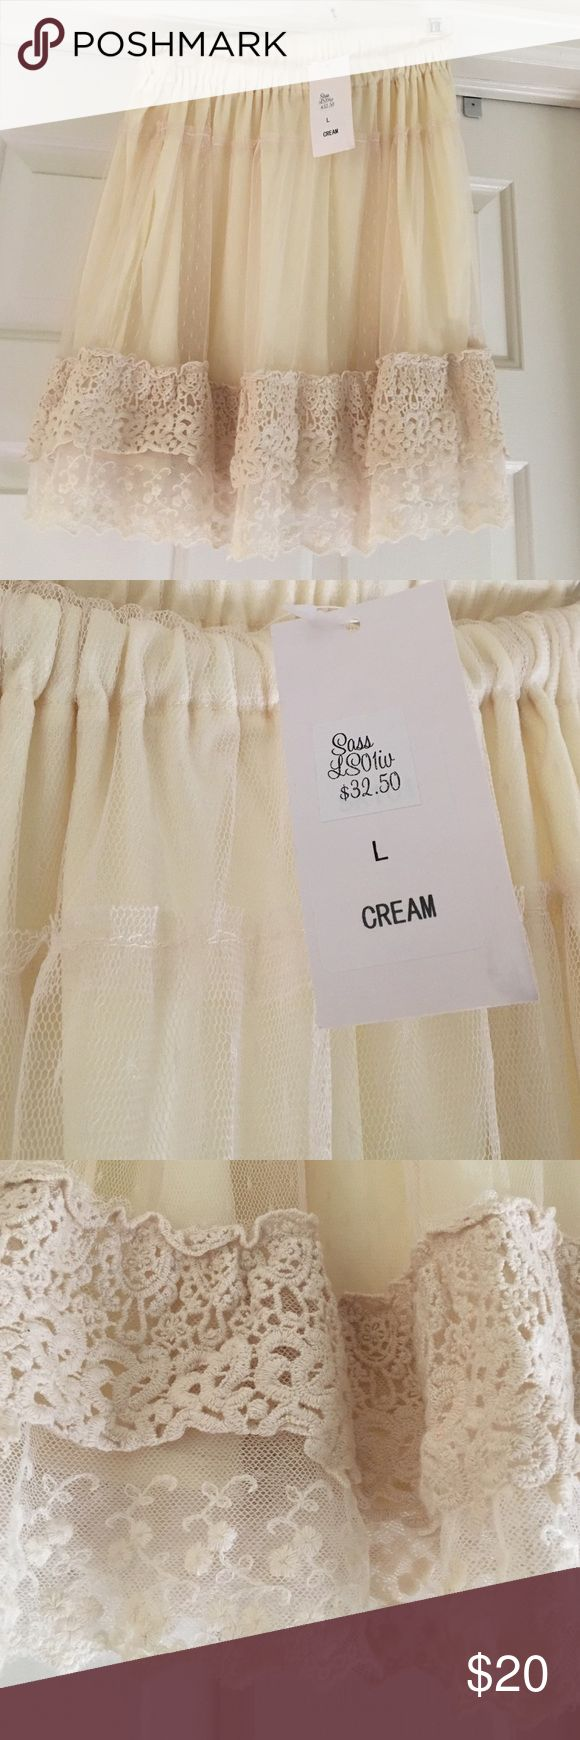 Lace Skirt Cream lace skirt, never worn. can be worn as a slip, skirt extender or on its own. Skirts Midi